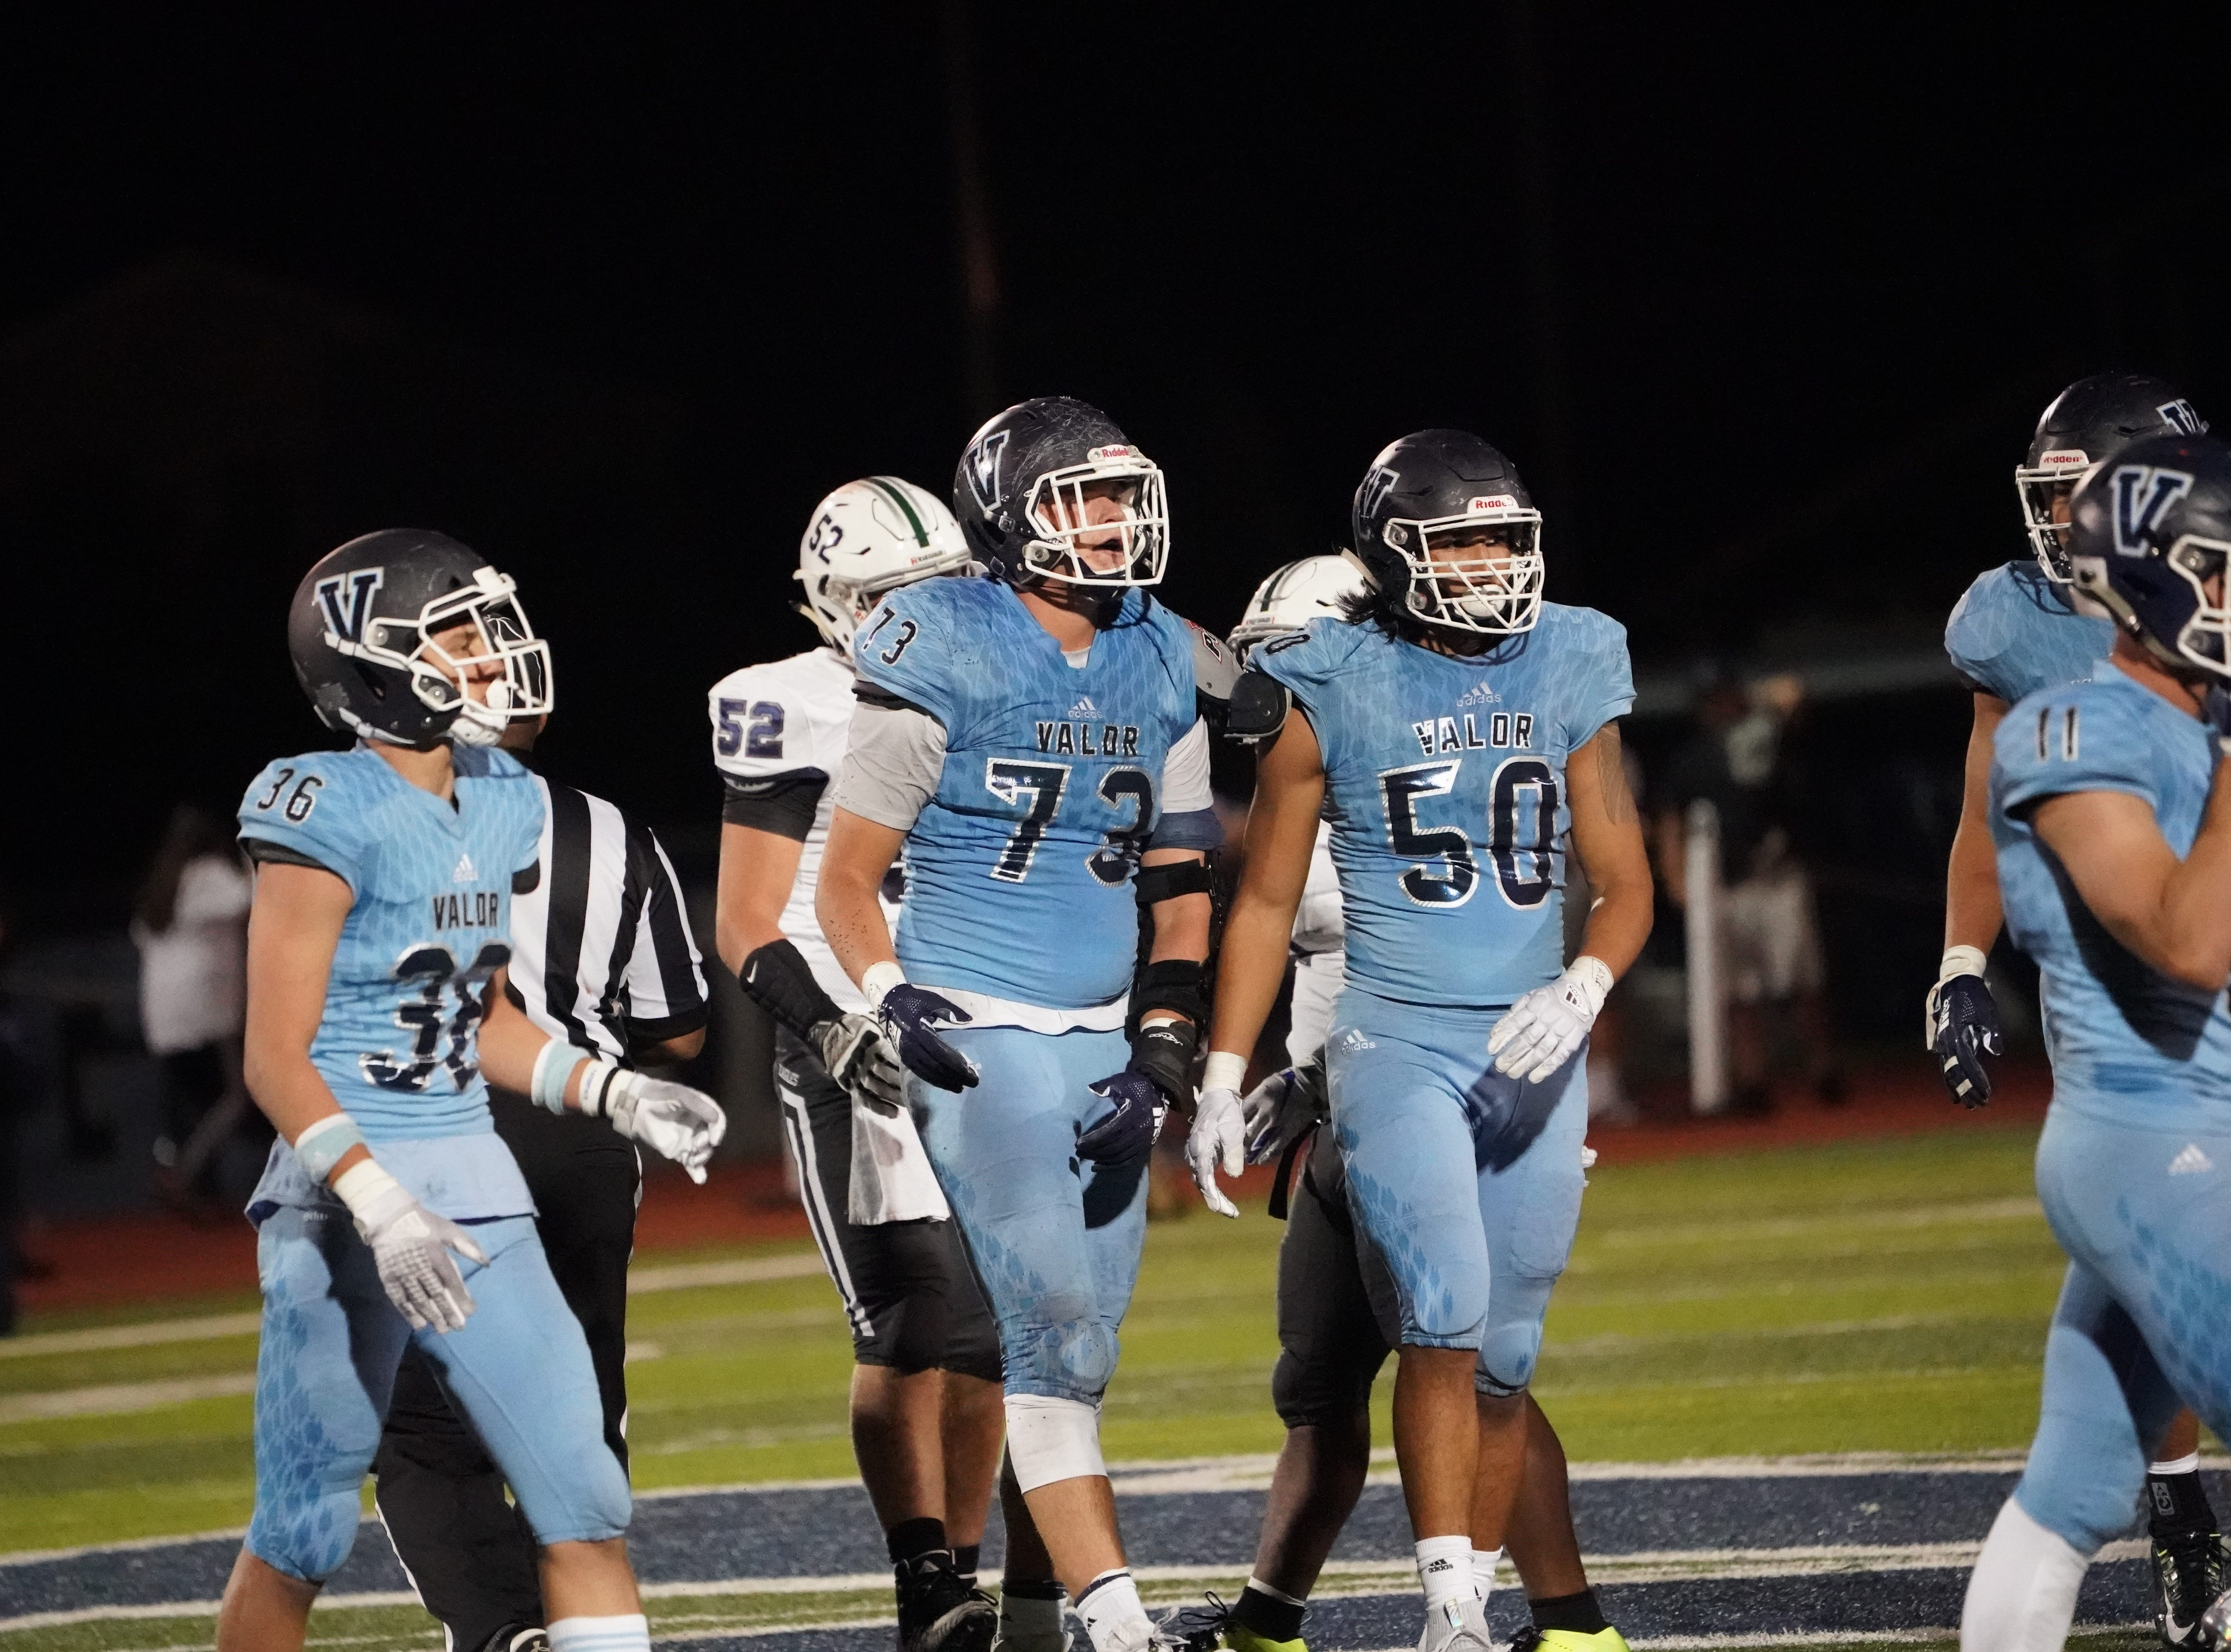 Valor Christian defensive end Cian Quiroga (50) has committed to join CSU after helping Valor win the 5A title.